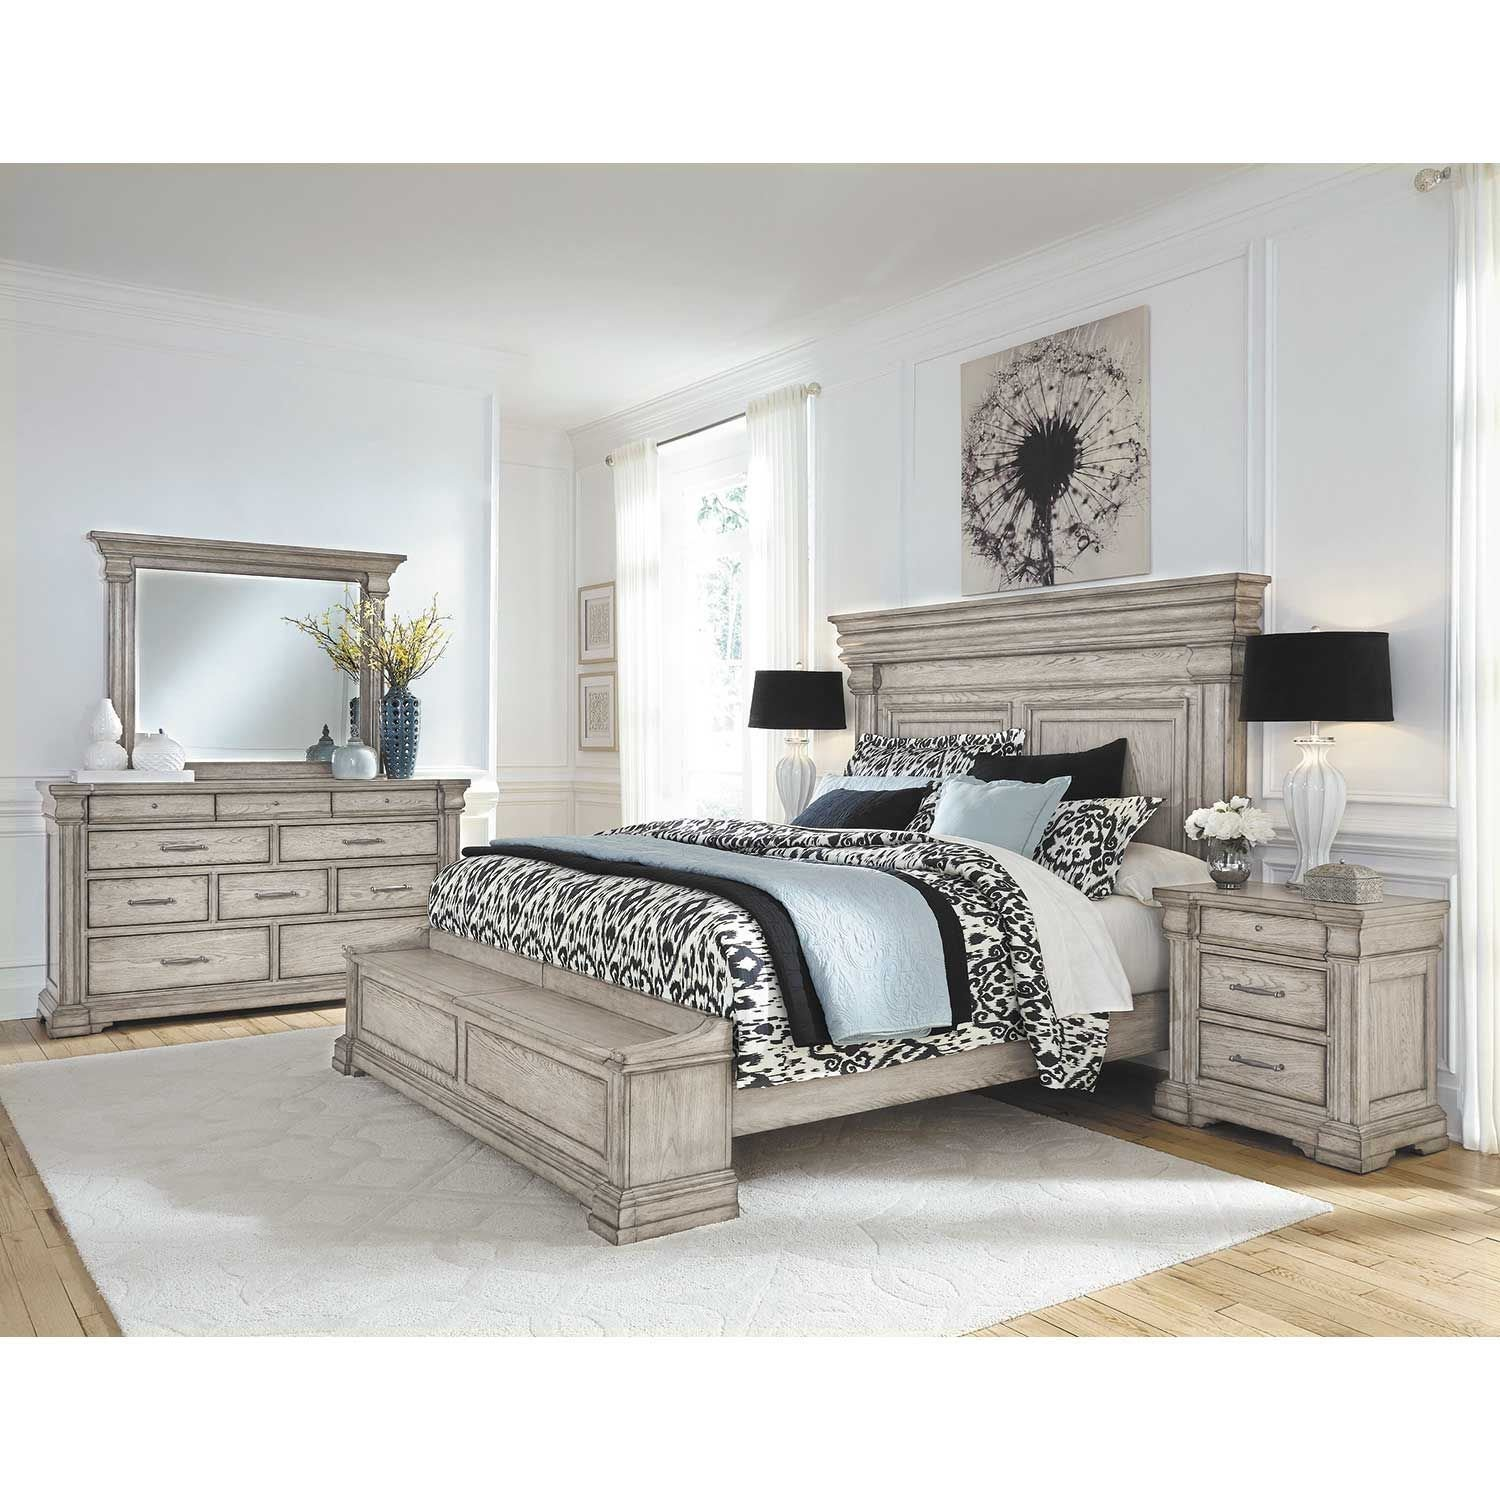 1a65fe5255 Madison Ridge Bedroom Set by Pukaski is in Stock at AFW